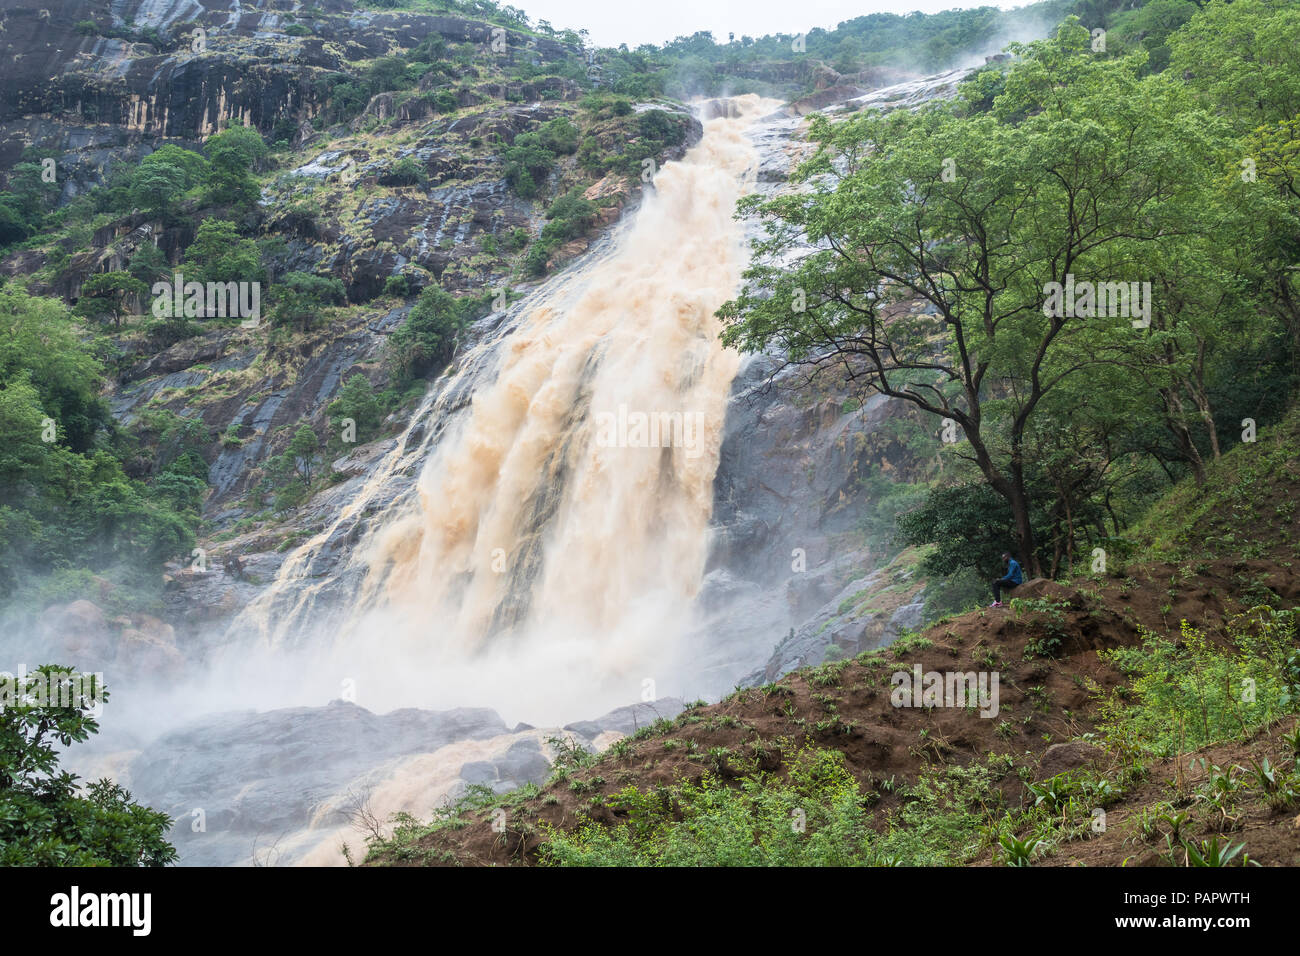 A massive but beautiful picturesque waterfall deep in a rainforest causing mist and wetting everything around it constantly. - Stock Image